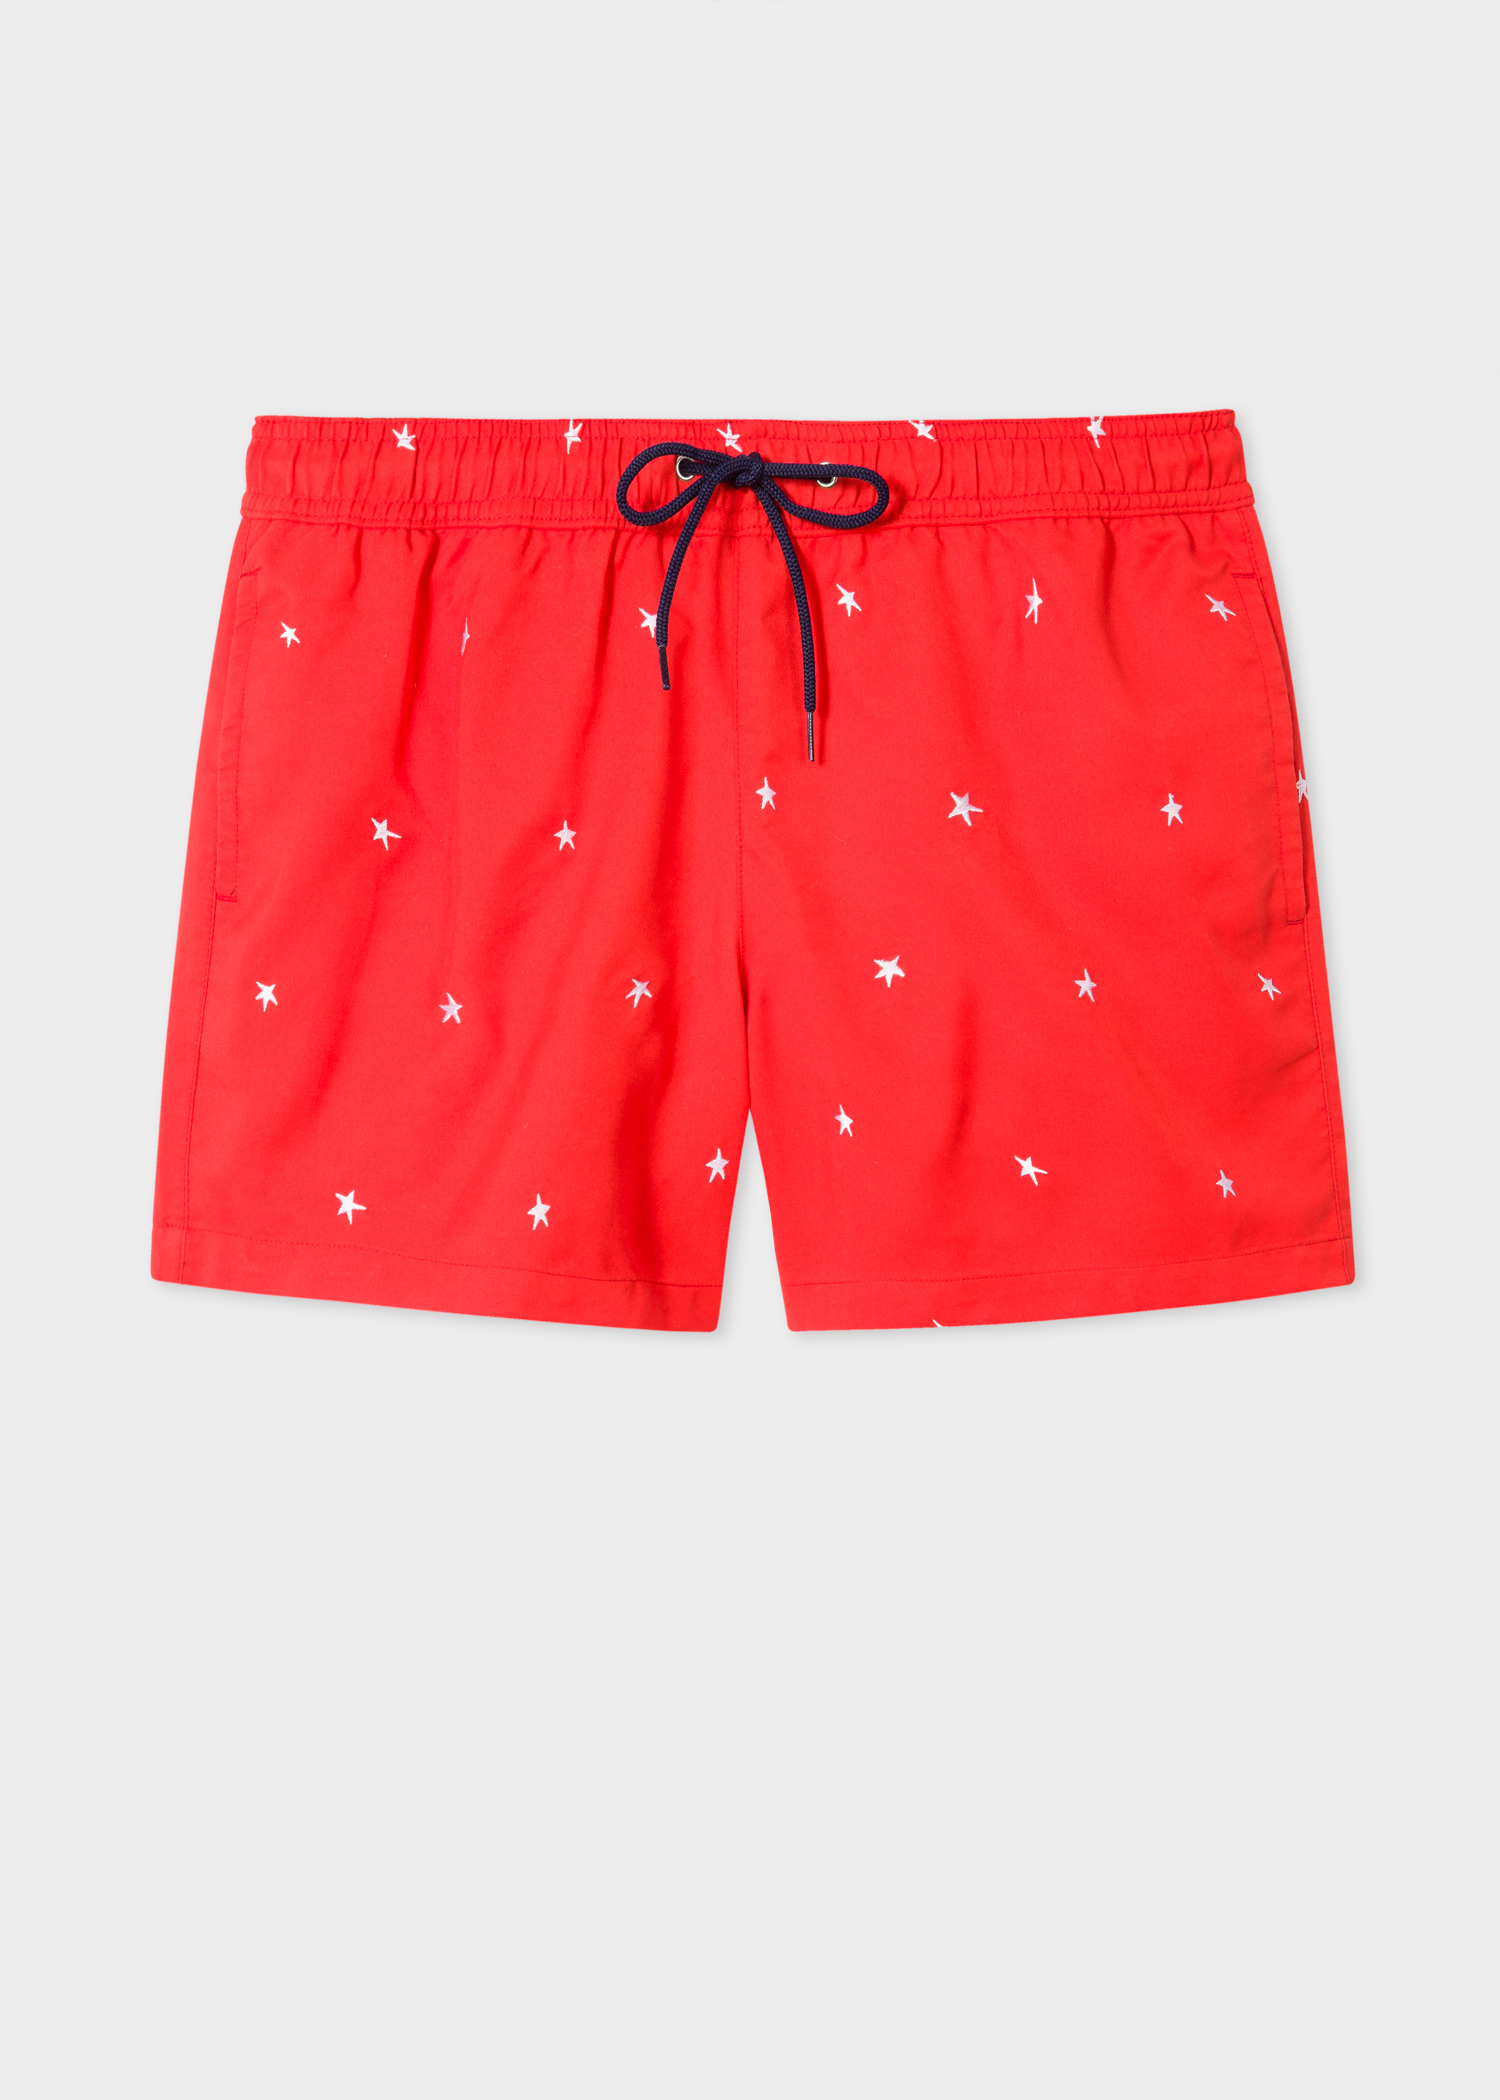 7a9e16321a Short De Bain Paul Smith Homme Rouge Brodé 'Star' - Paul Smith Francais